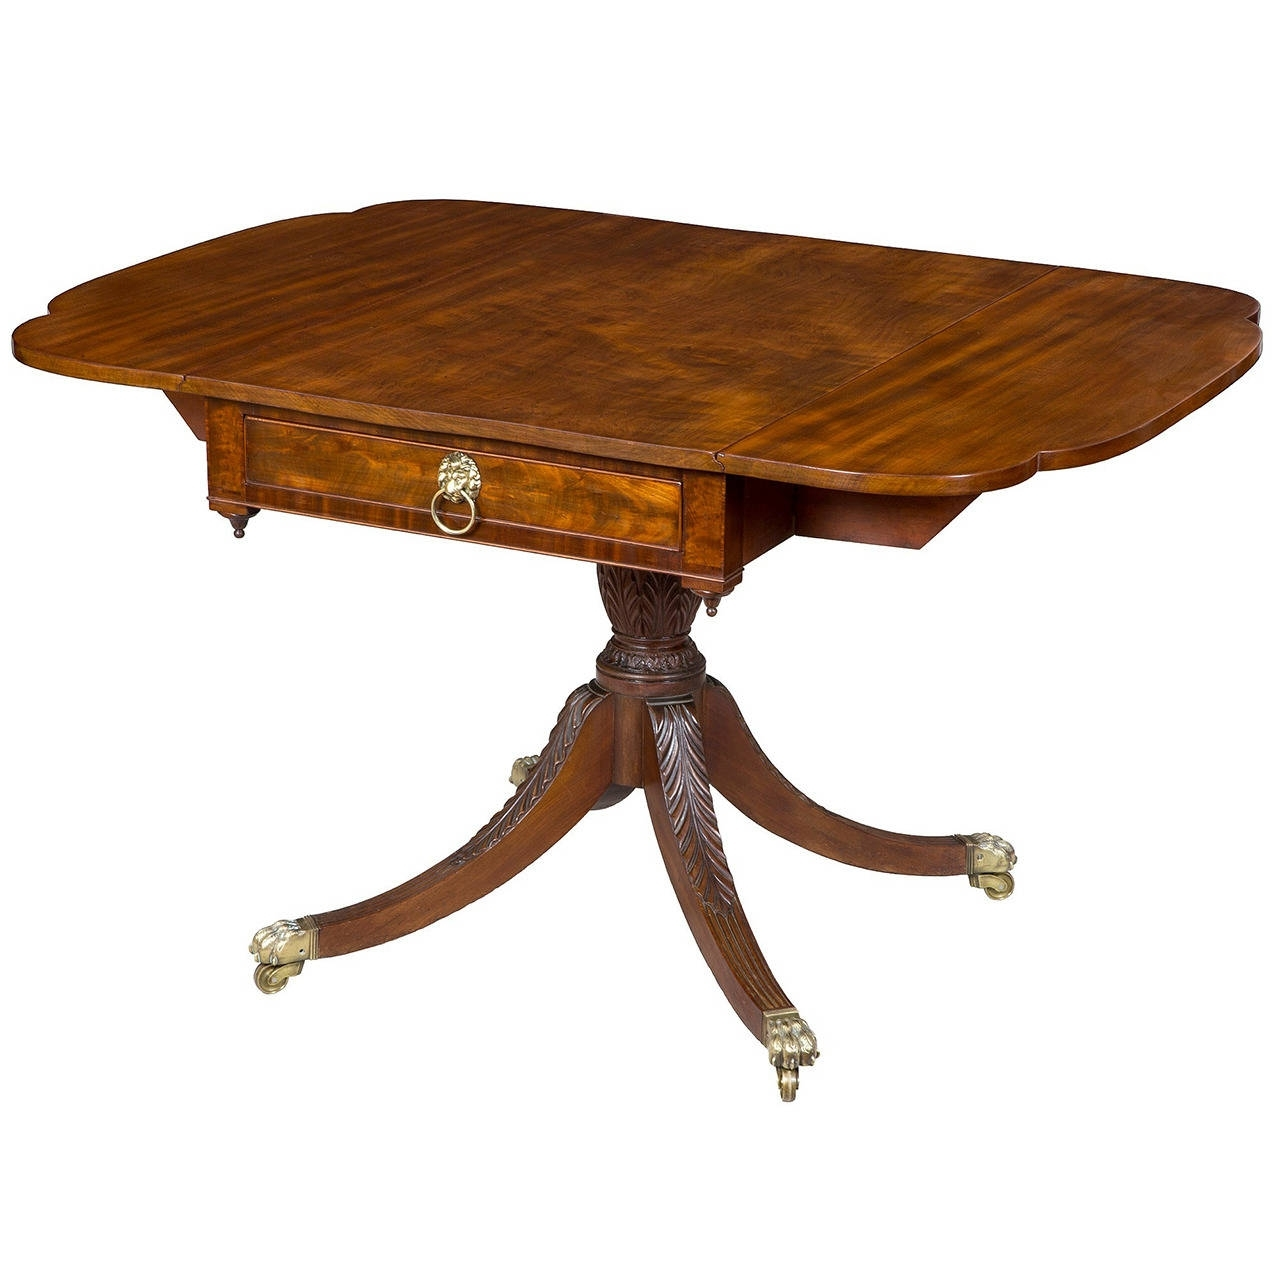 New York Dining Tables Inside Best And Newest Sheraton Mahogany Dining Table, New York, Circa 1810 For Sale At 1Stdibs (View 13 of 25)